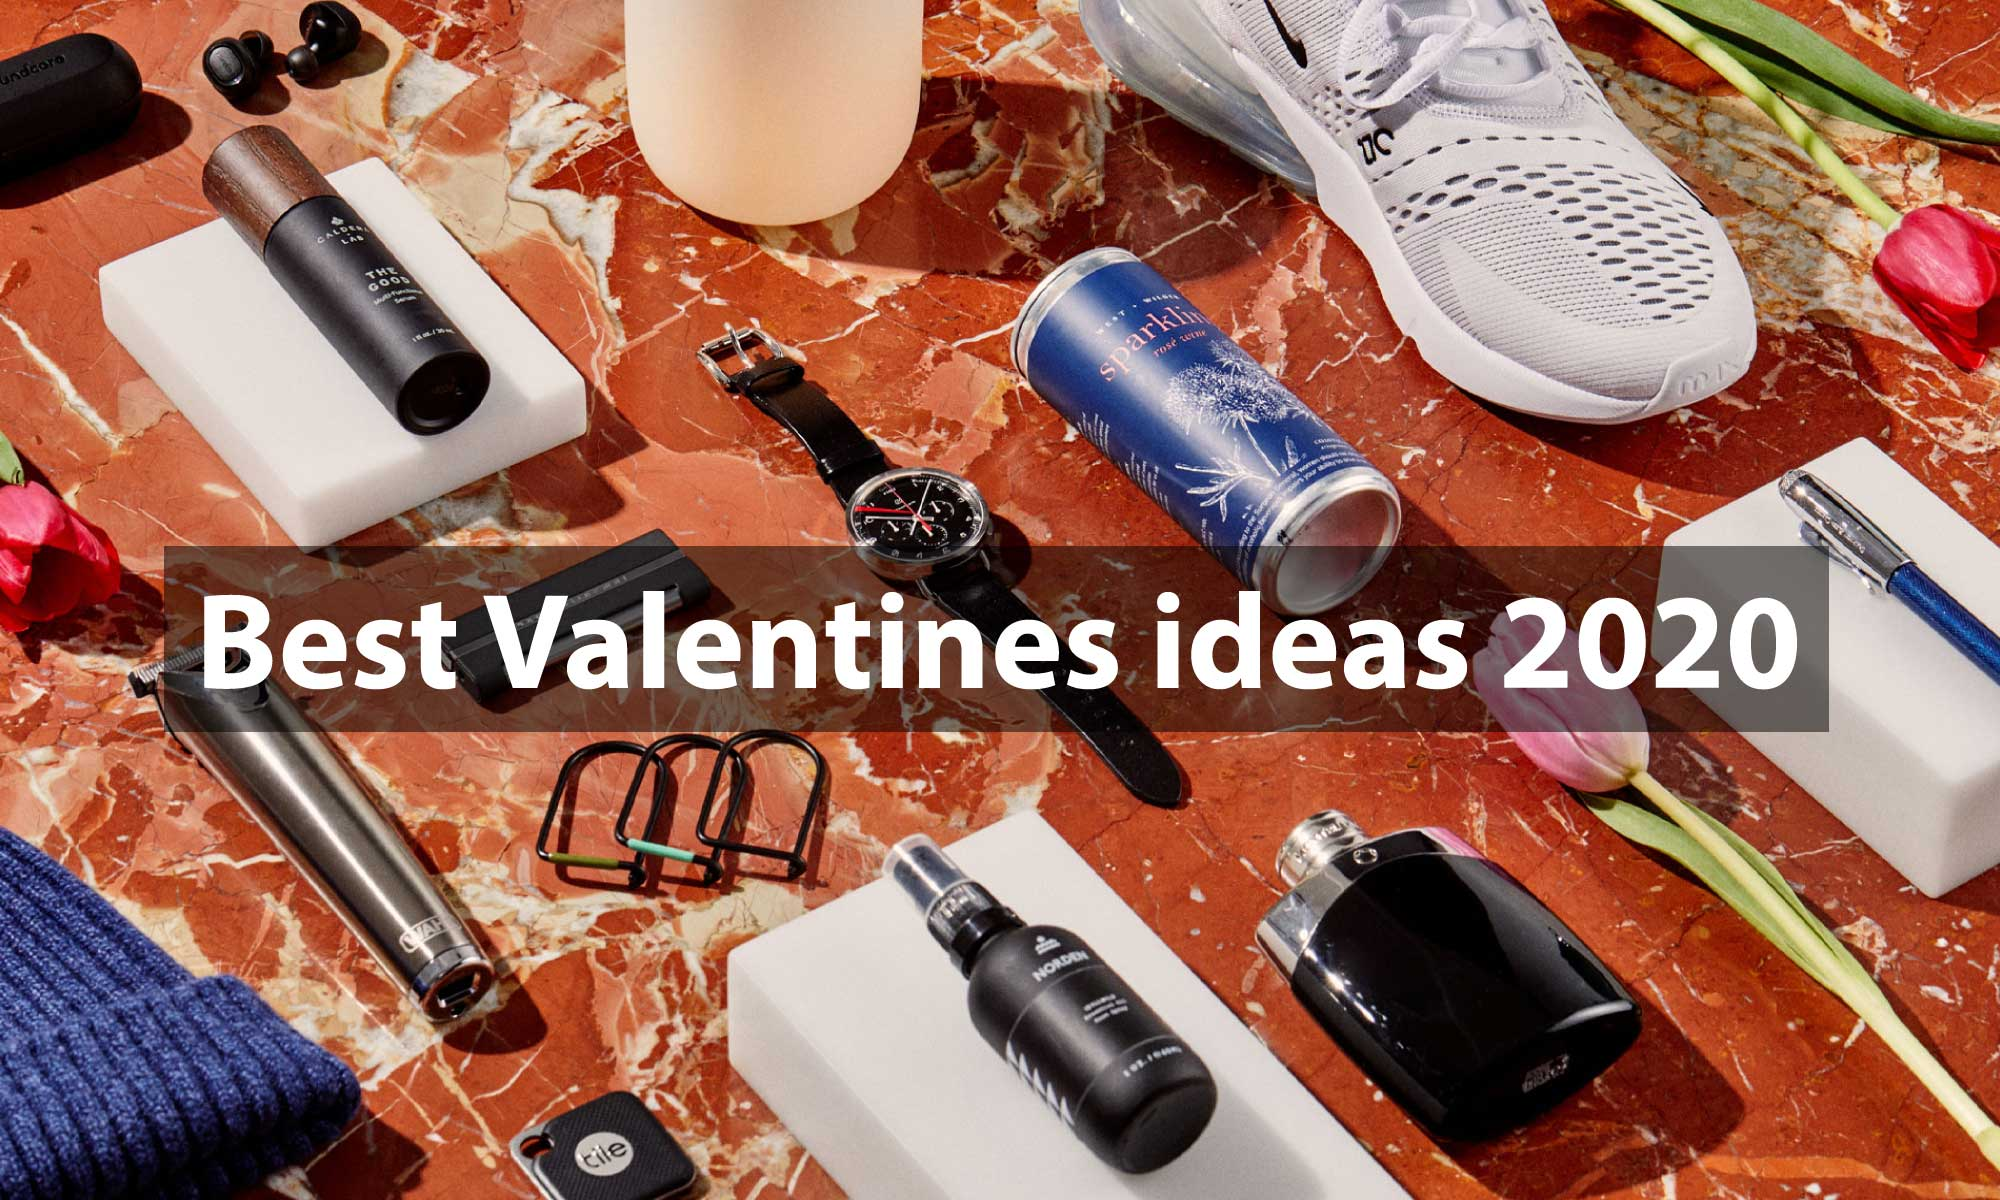 Best-Valentines-ideas-2020